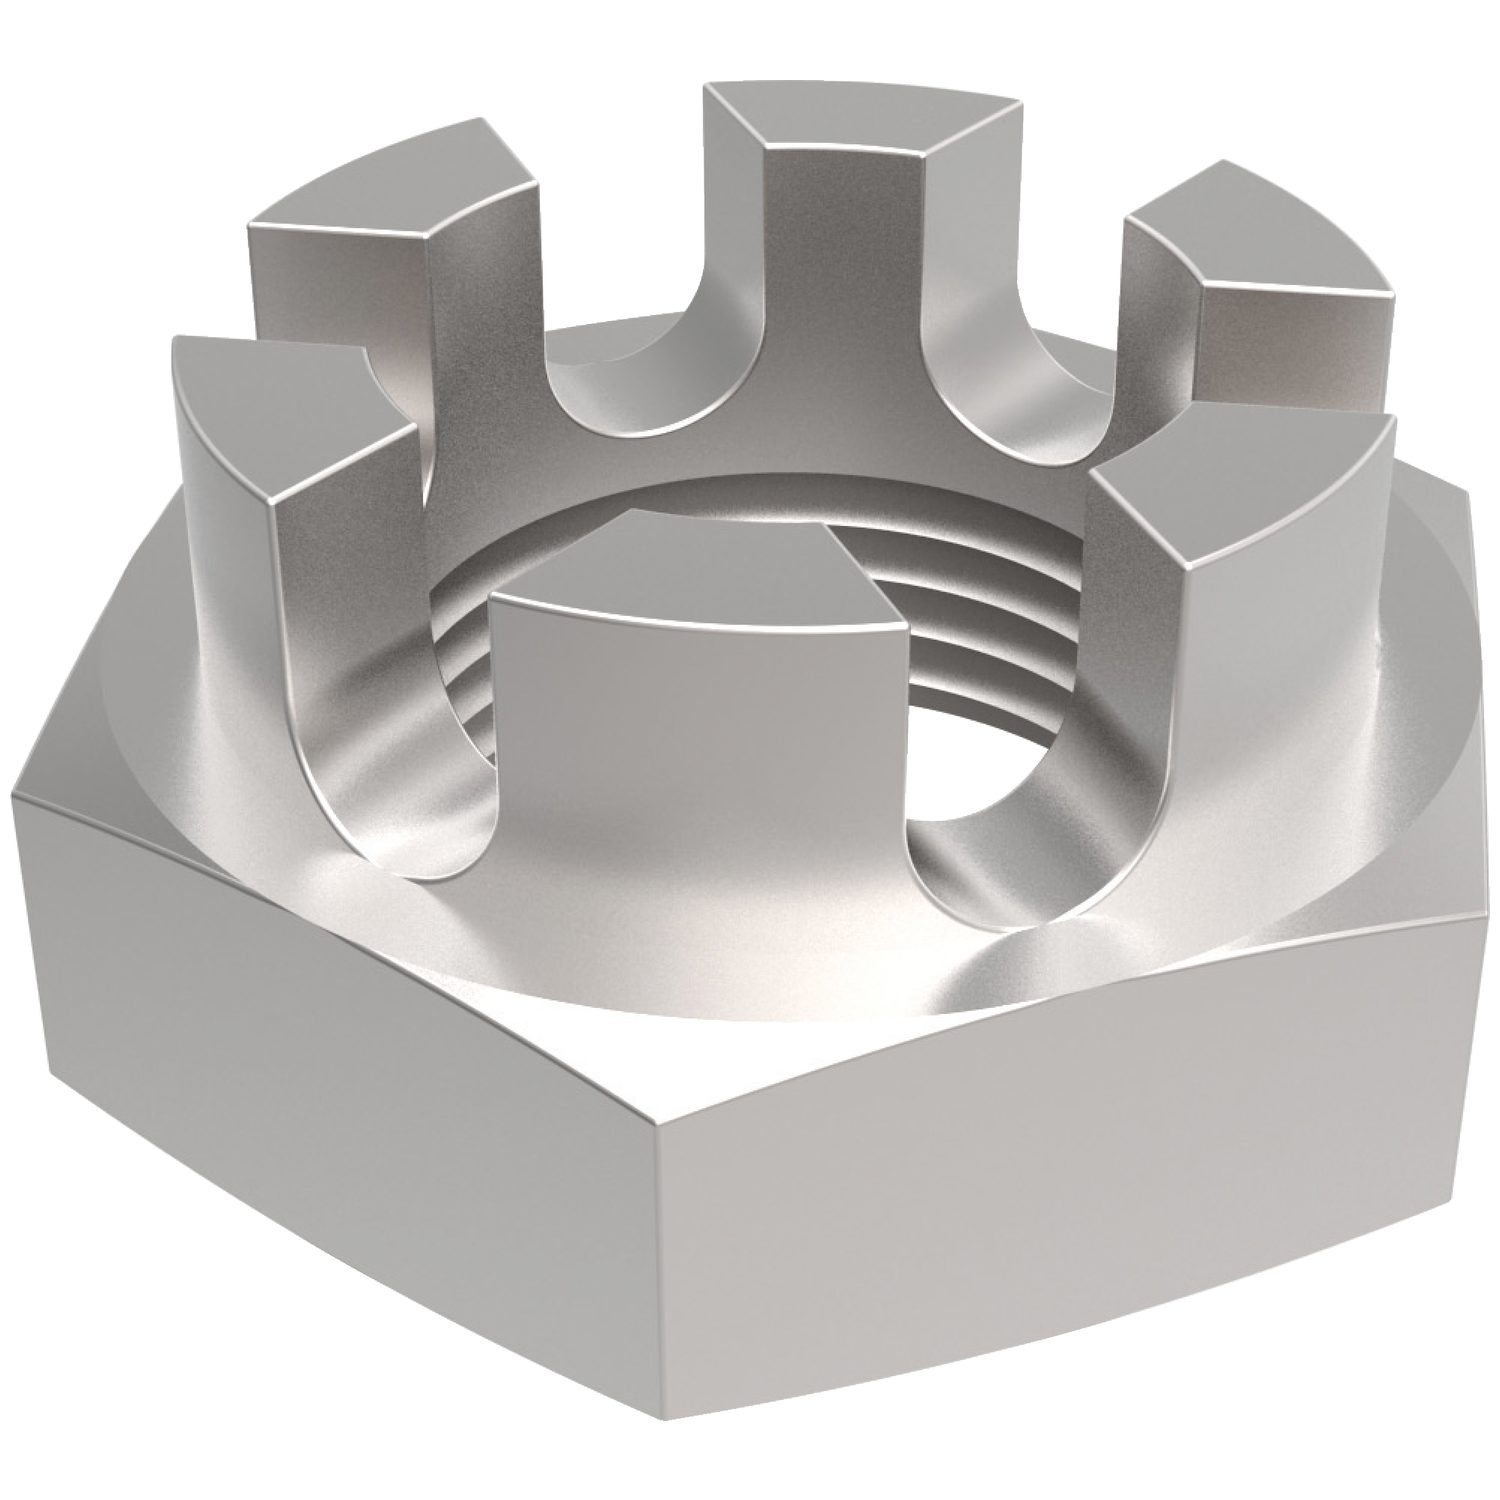 Hexagon Castle Nuts Thin Type Thin hexagon castle nuts made from A2 stainless steel. Sizes from M6 to M30. Manufactured to DIN 937.